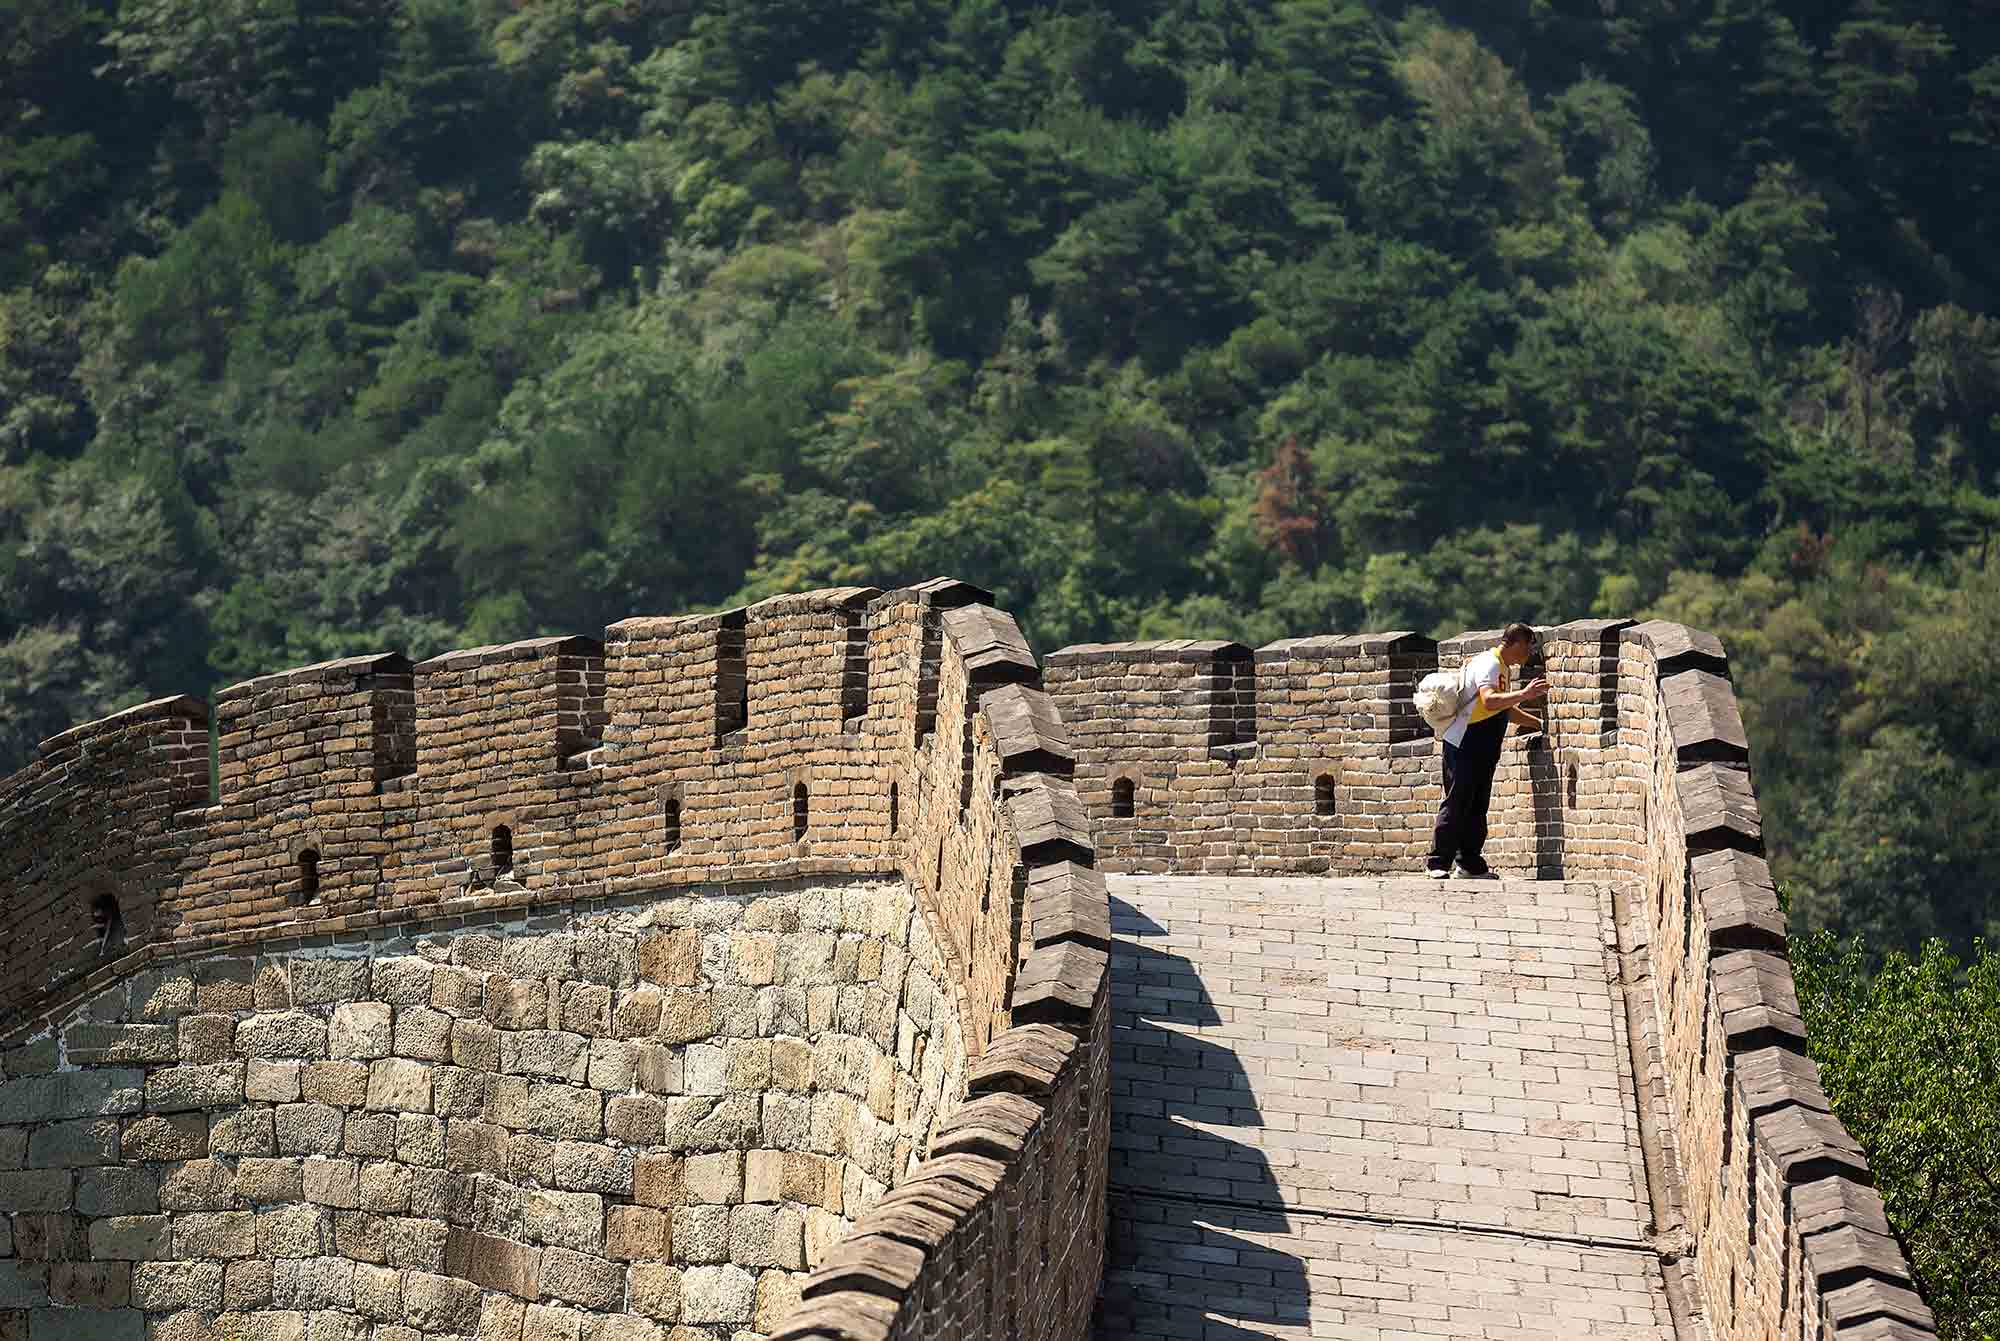 The Great Wall of China near Beijing. © Ulli Maier & Nisa Maier